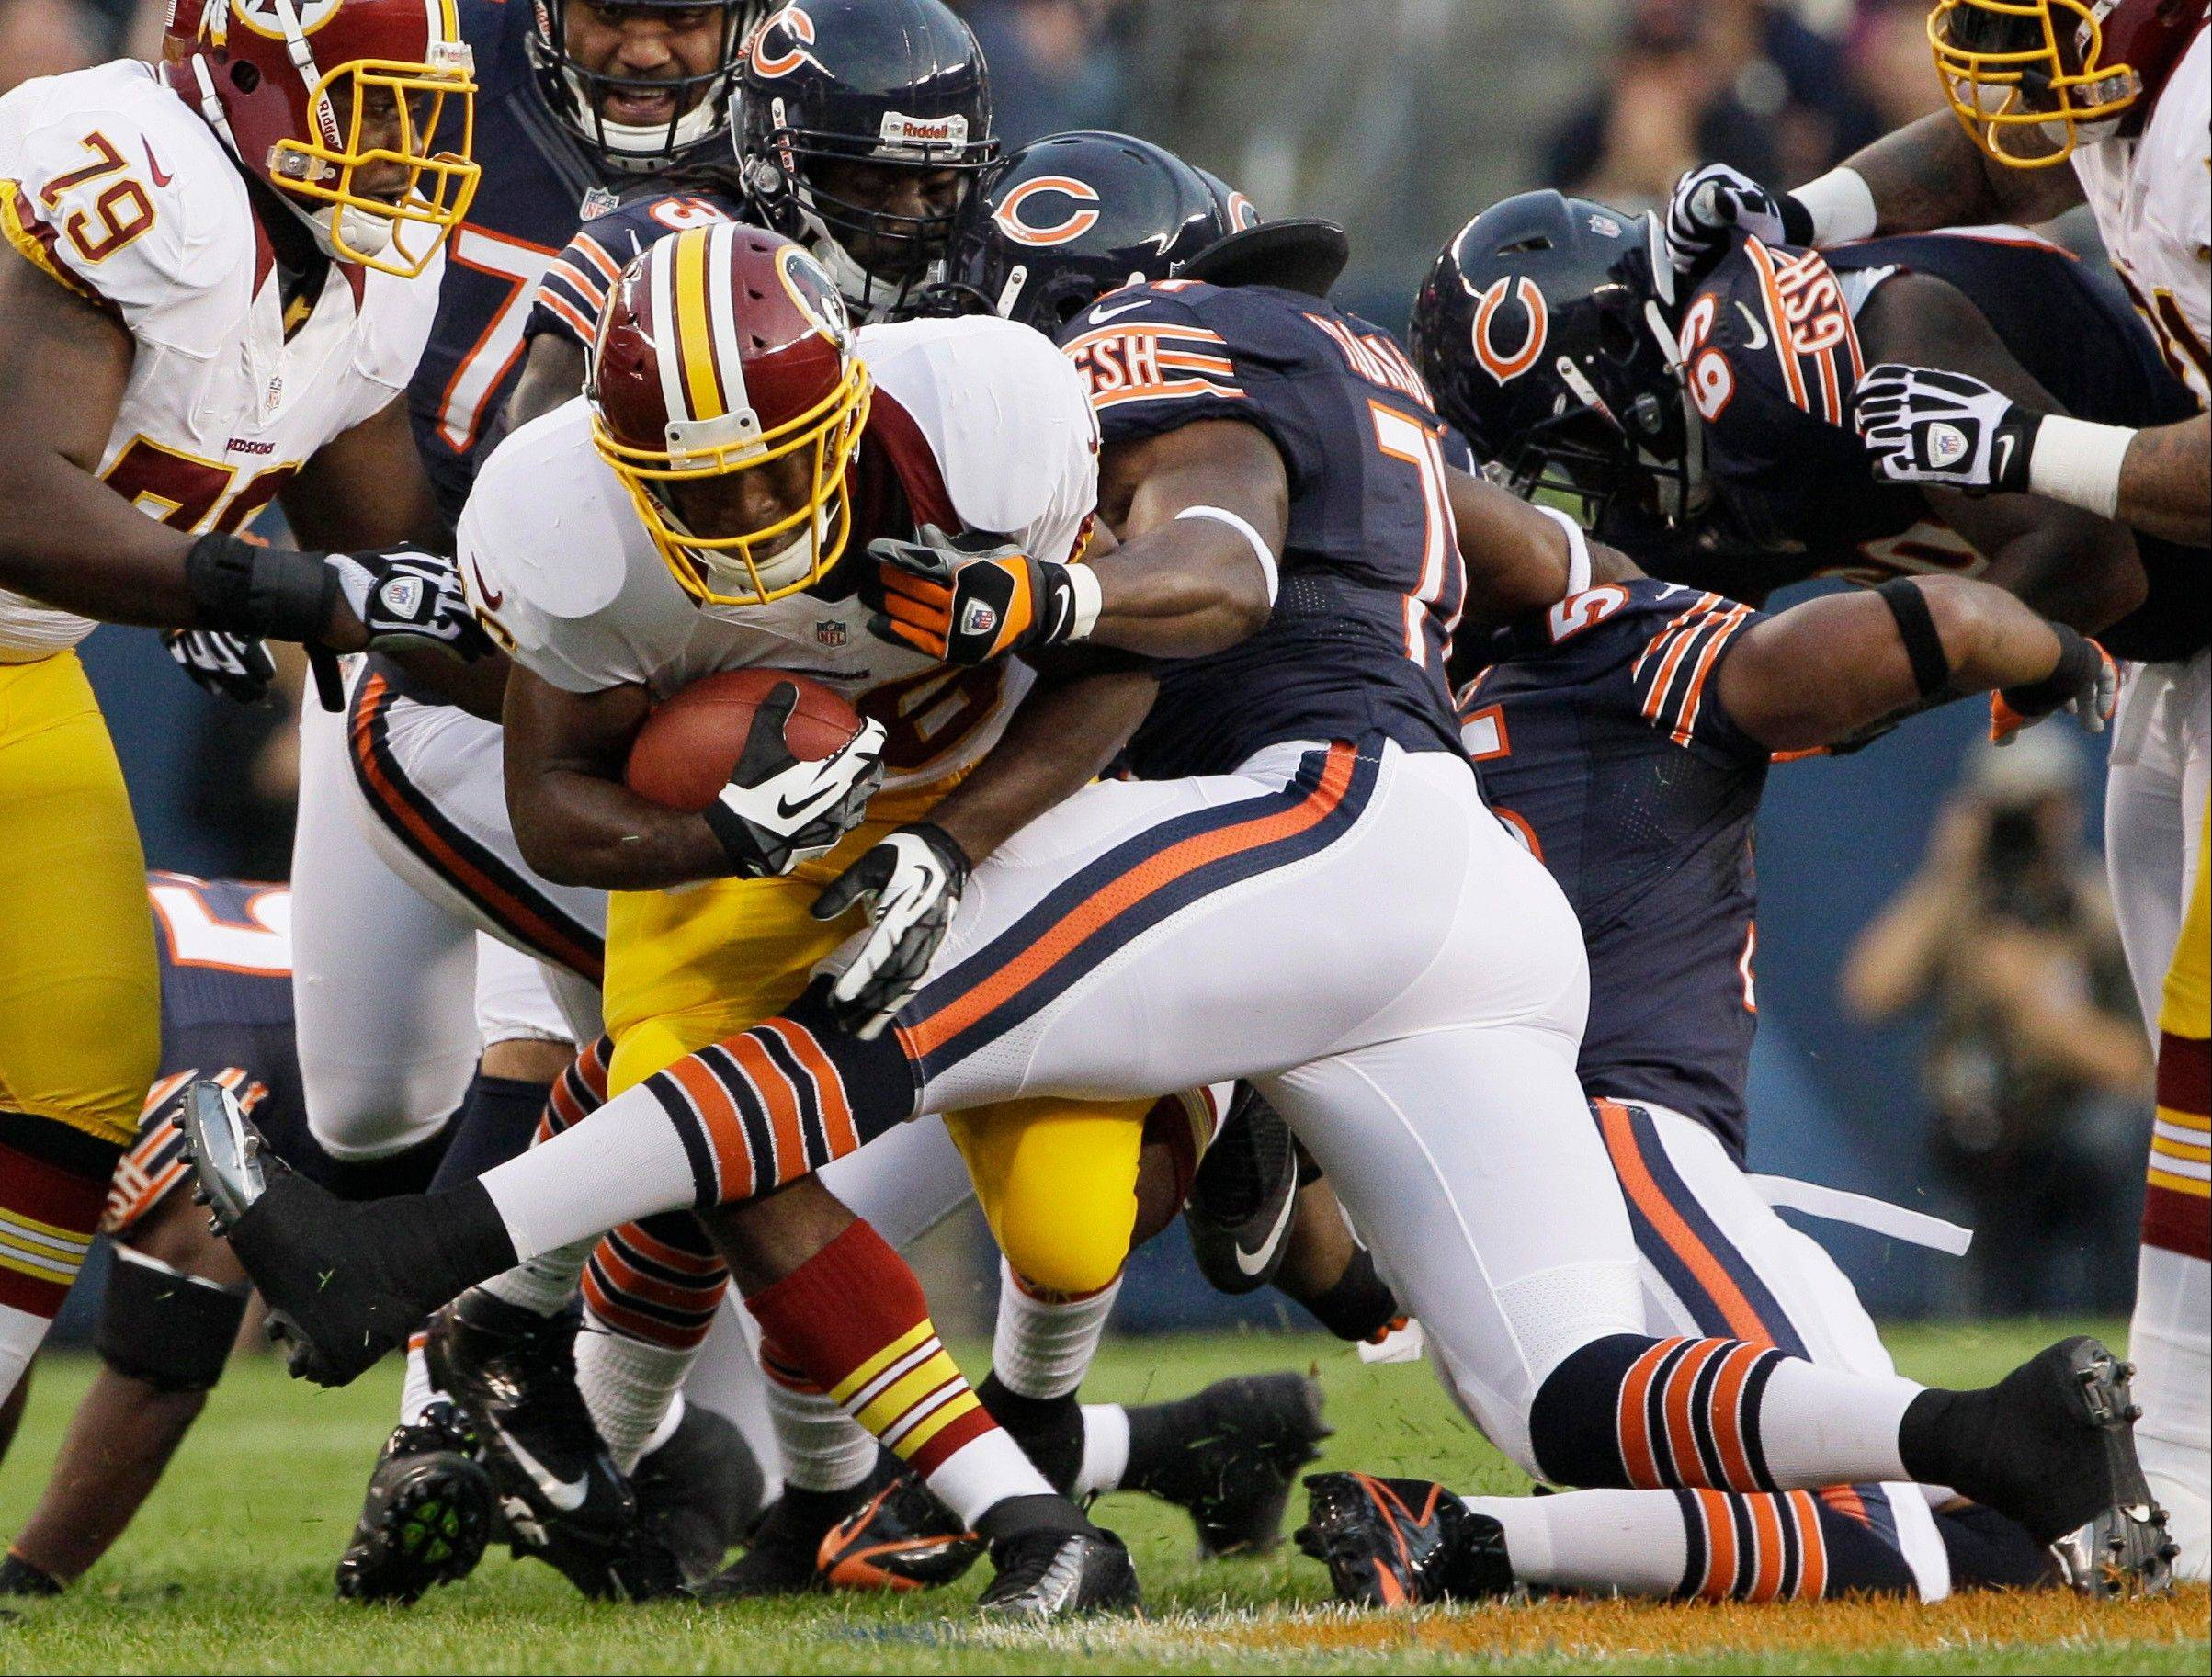 Bears' Idonije hard to miss against Washington